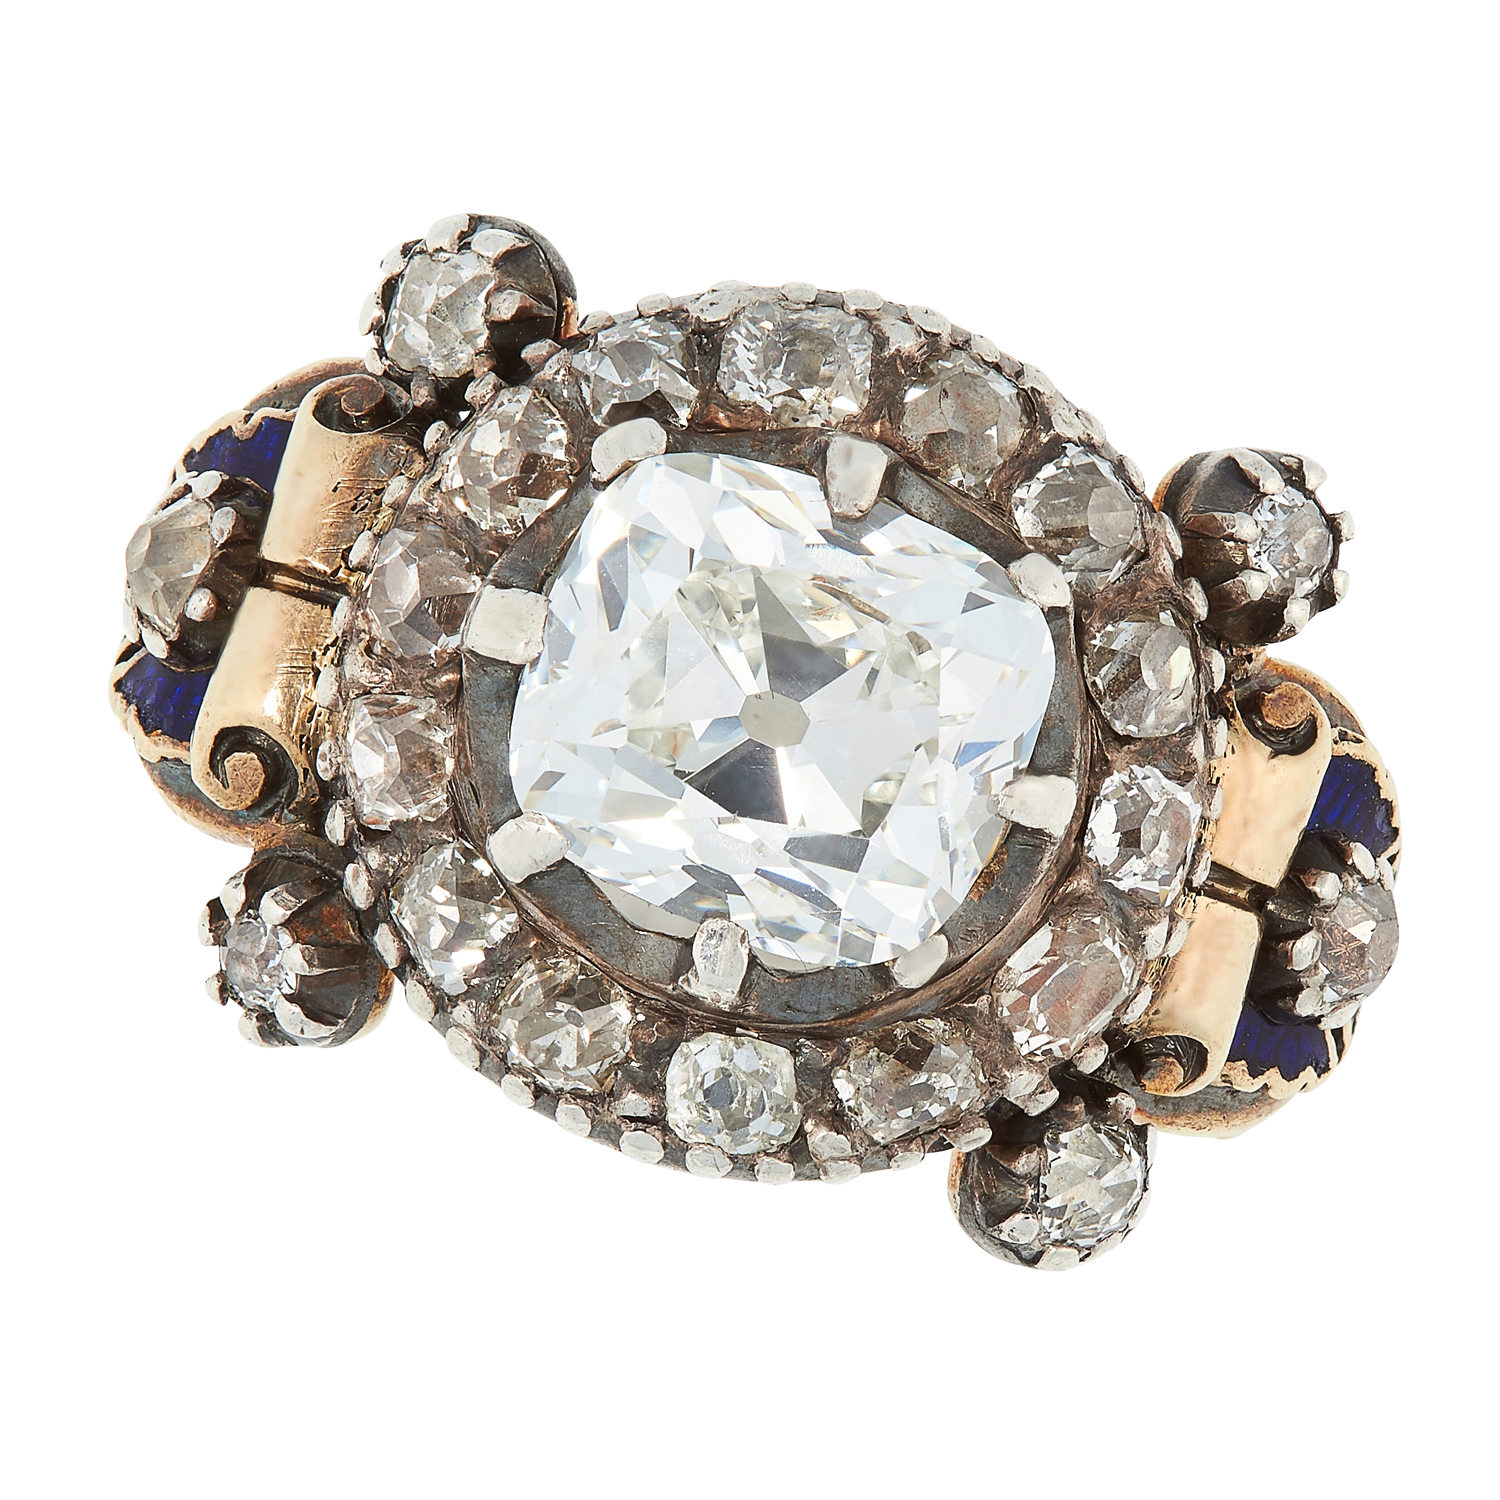 AN ANTIQUE DIAMOND AND ENAMEL RING, 19TH CENTURY in high carat yellow gold and silver, set with an